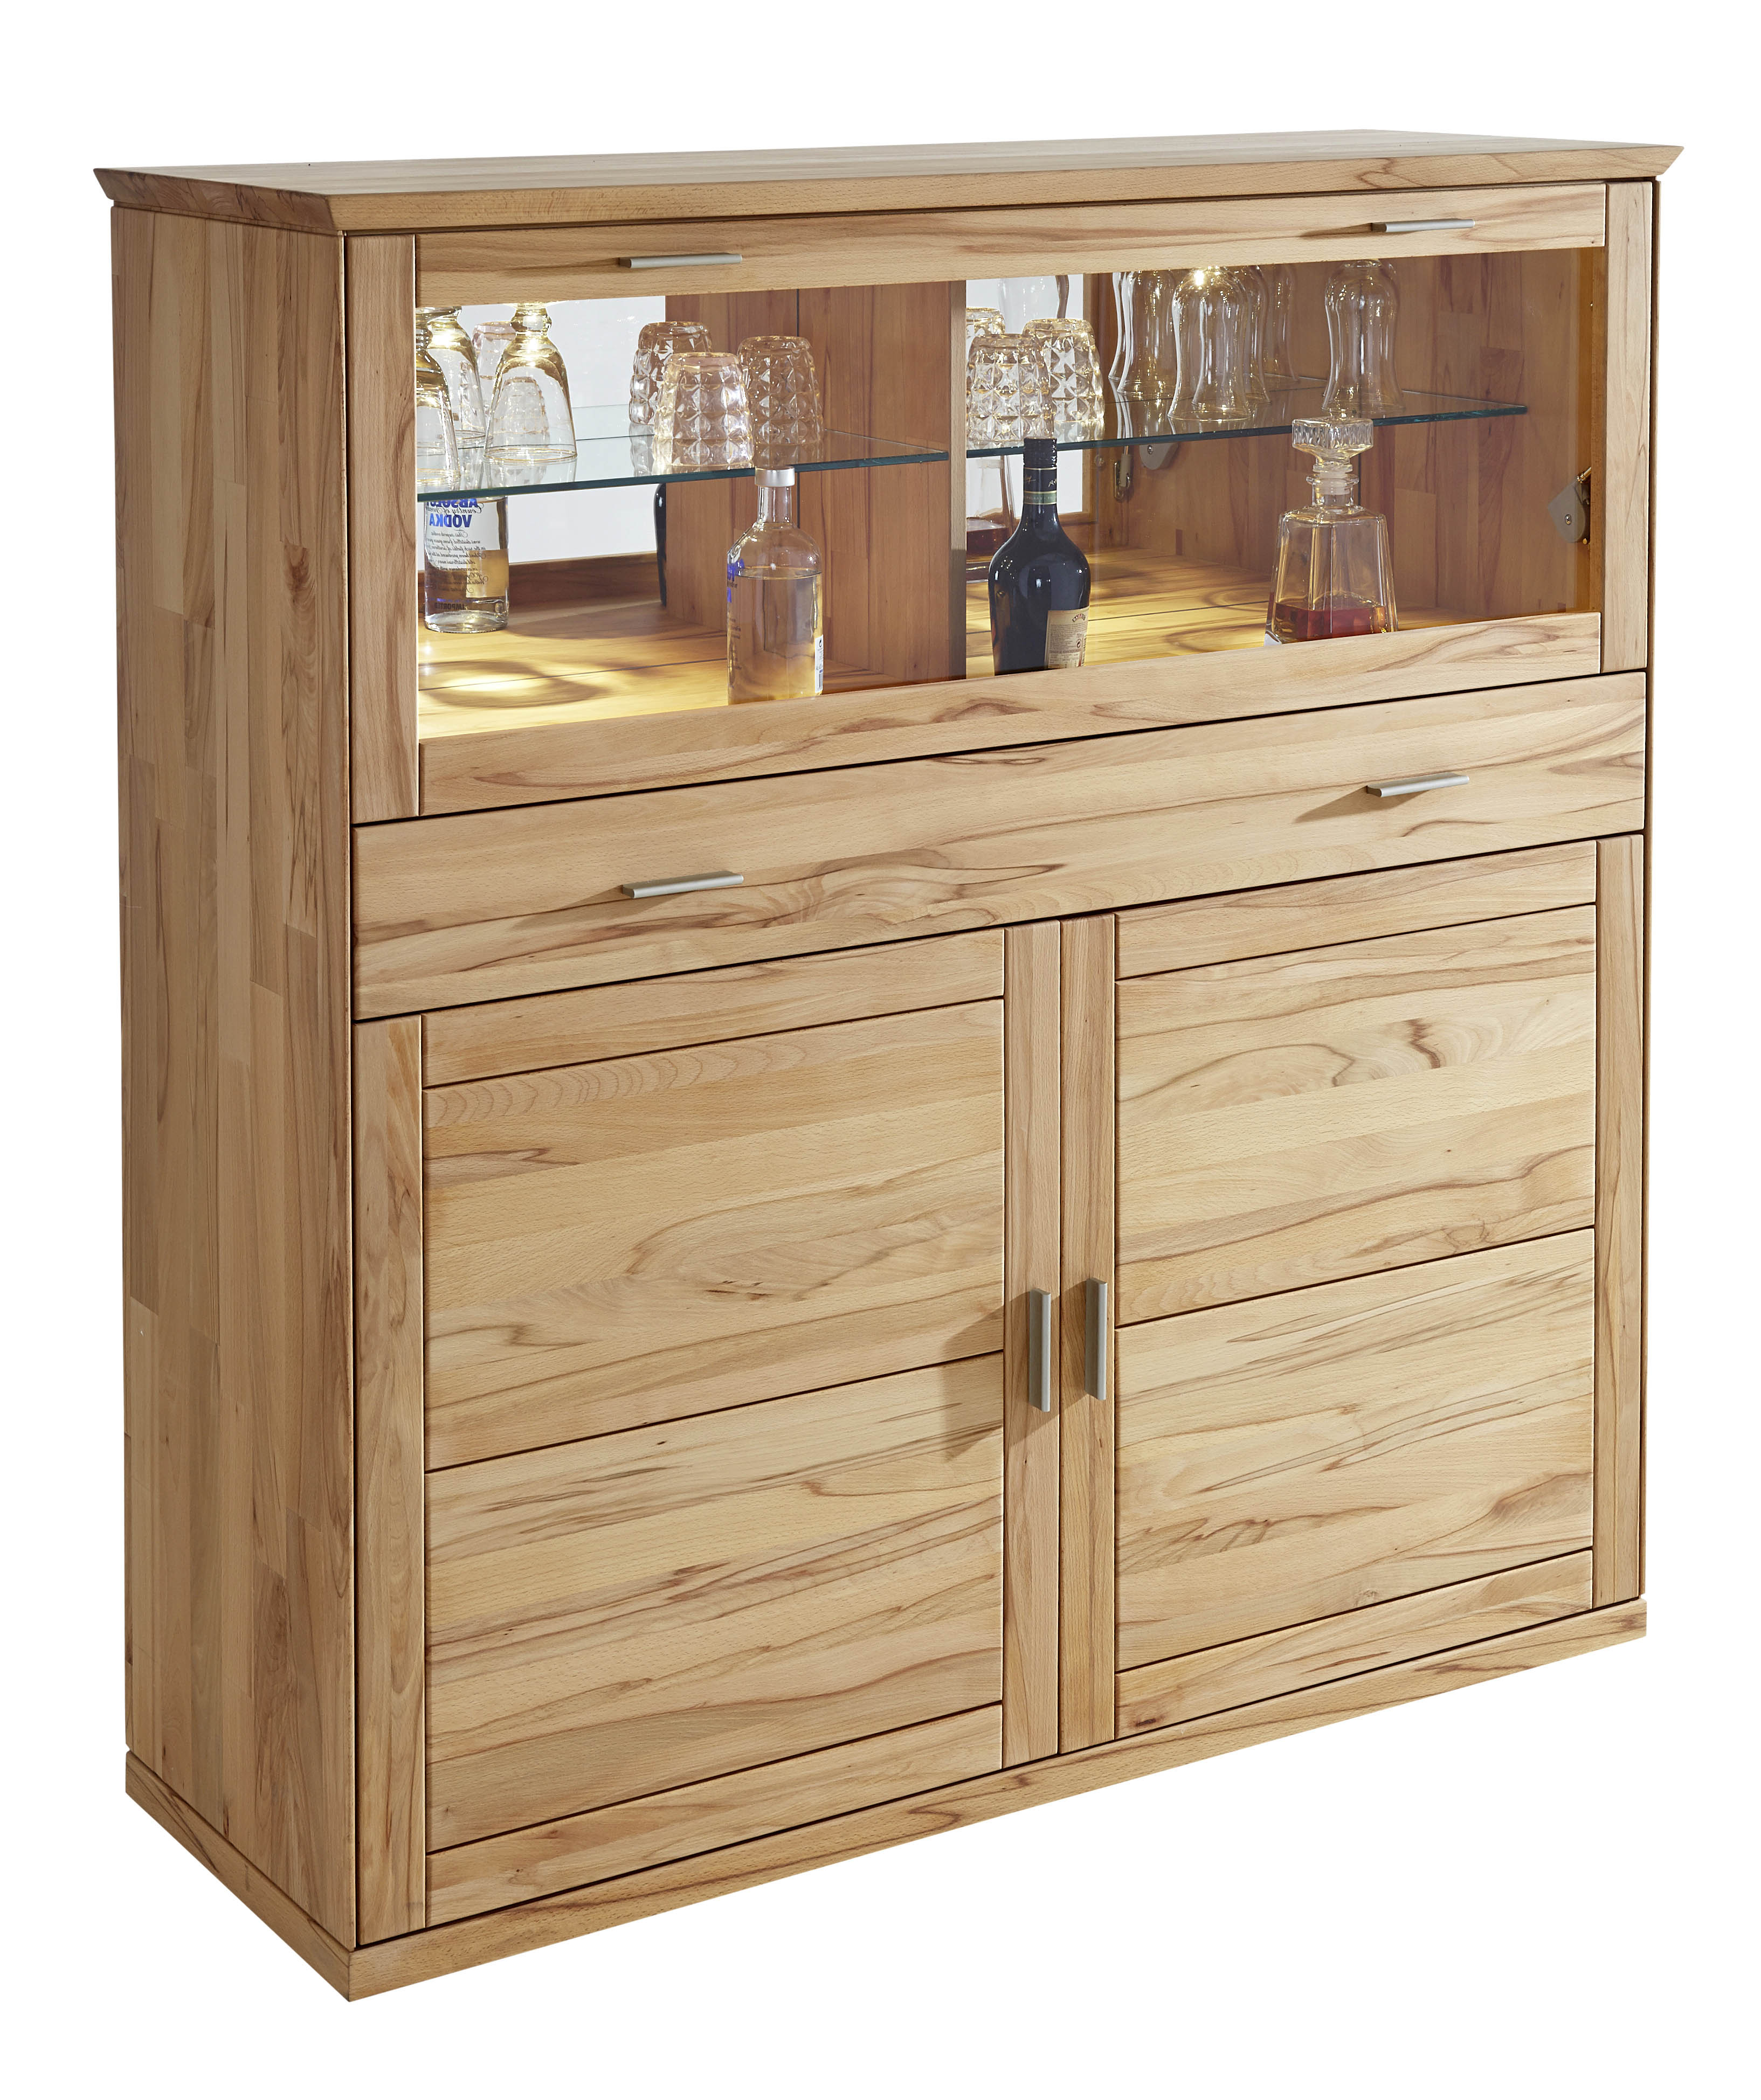 barschrank global faro plus schr nke esszimmerm bel essen hofmeister online shop. Black Bedroom Furniture Sets. Home Design Ideas